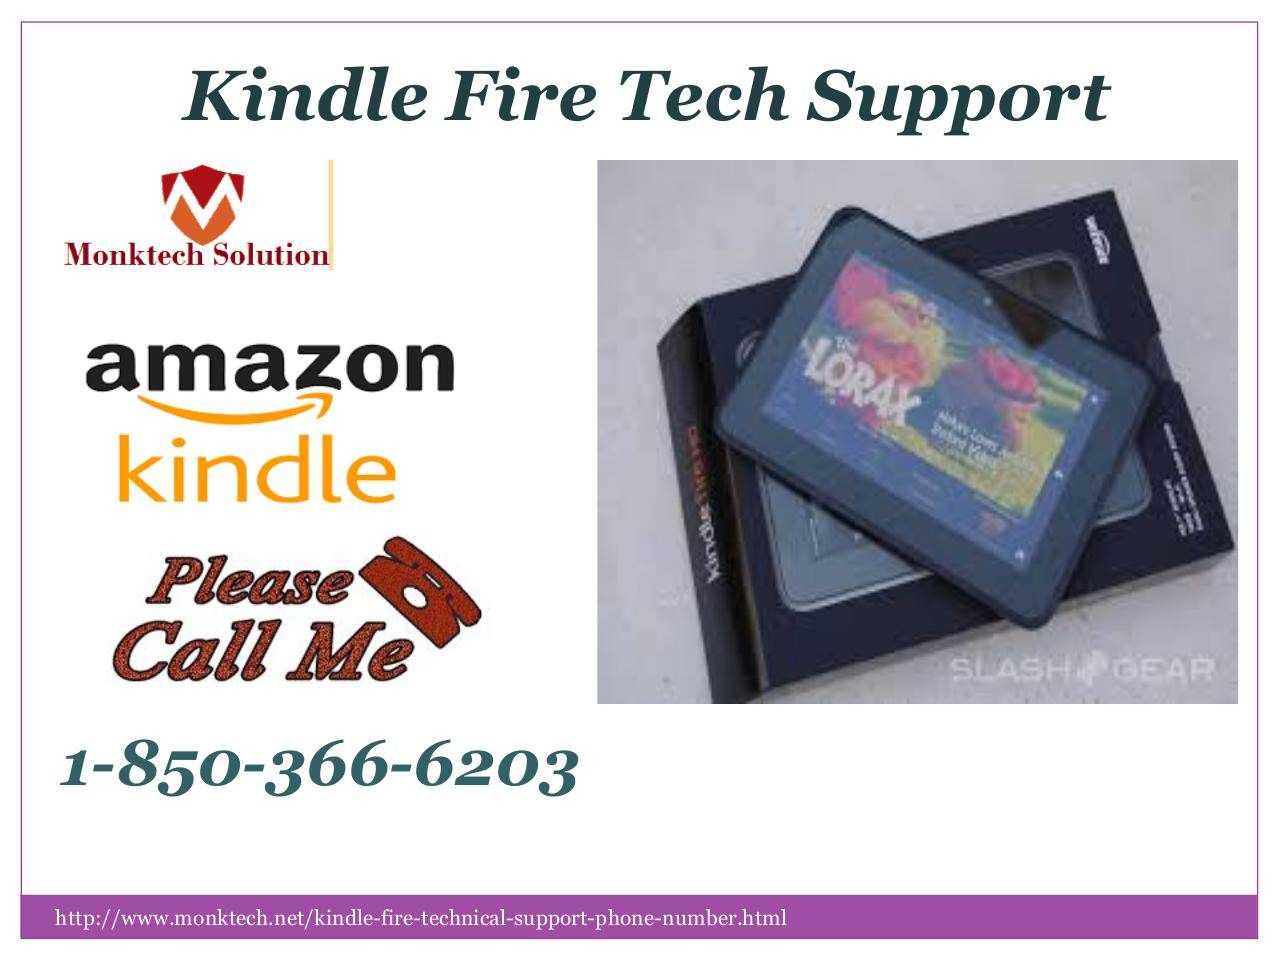 How do you employ the amazon kindle fire tech support 1 850